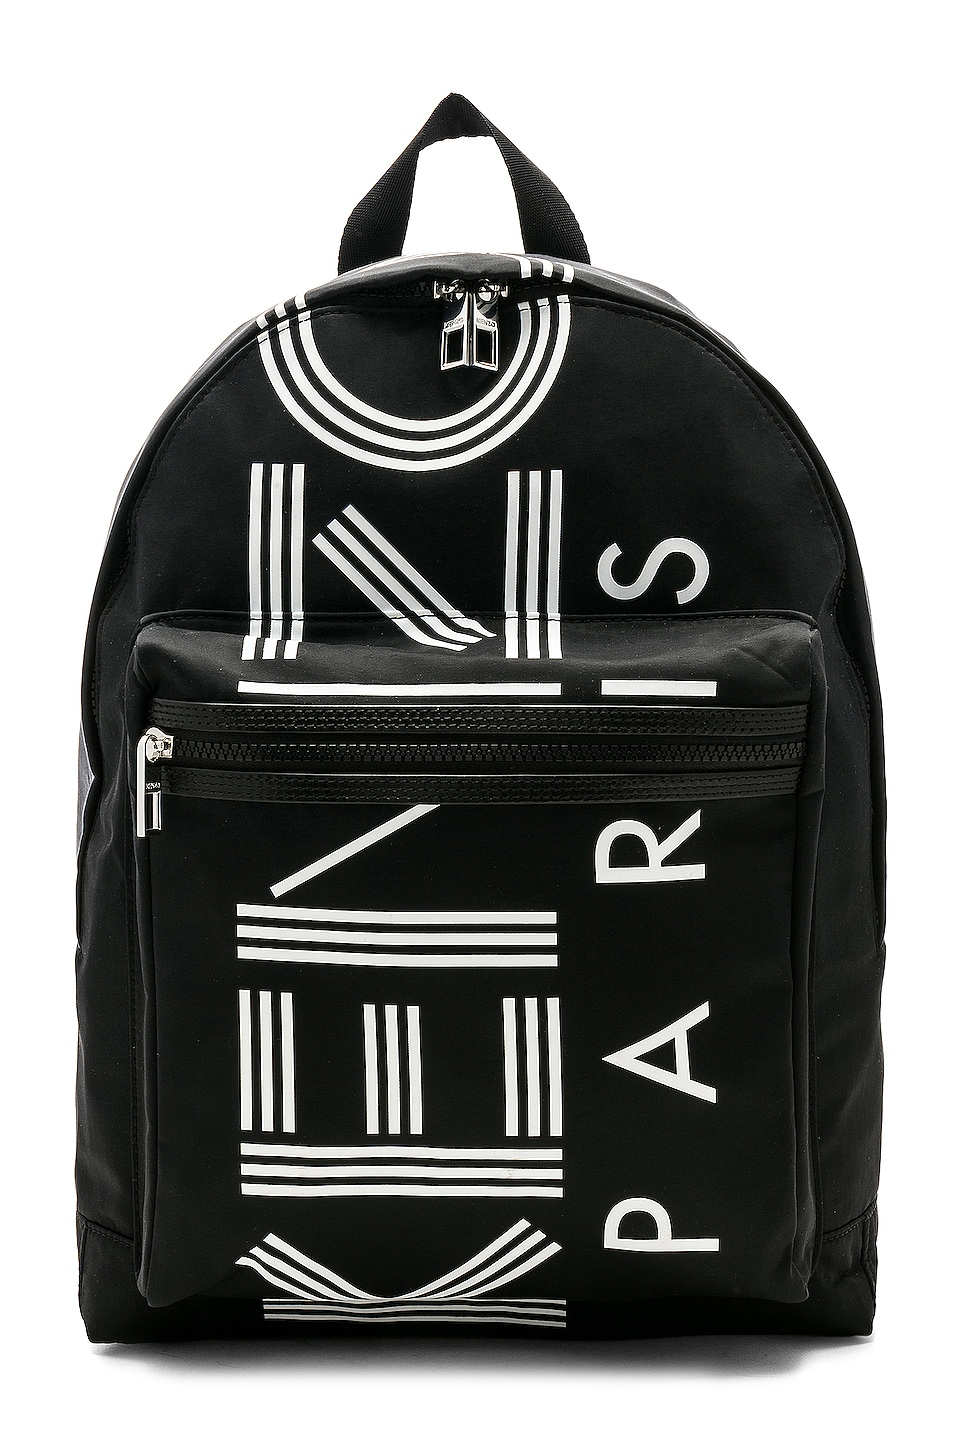 Kenzo Nylon Backpack in Black